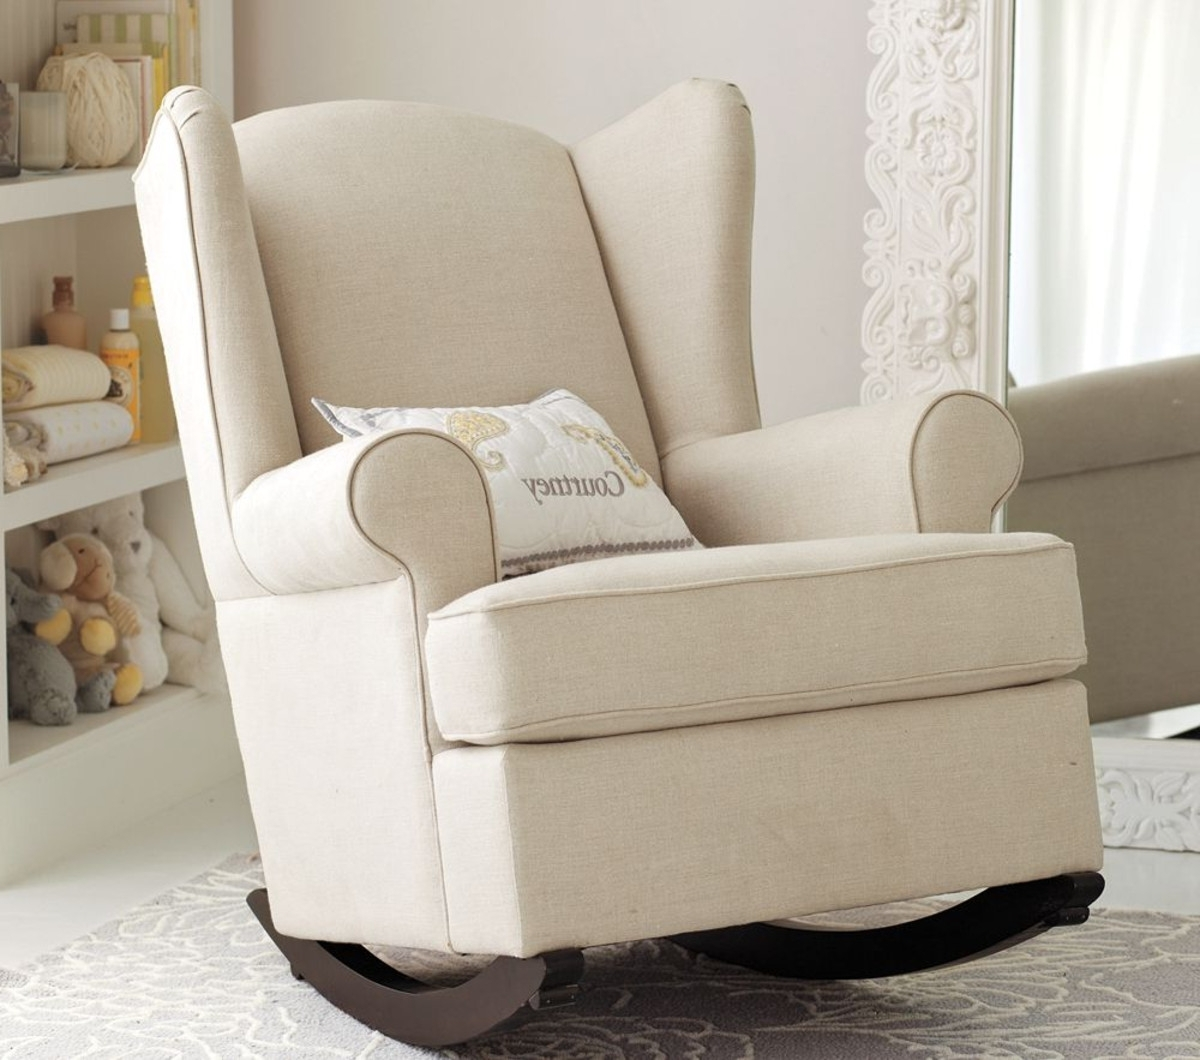 Rocking Chairs For Baby Room Inside Most Popular Modern Rocking Chairs Nursery — Wilson Home Ideas : Healthy (View 17 of 20)